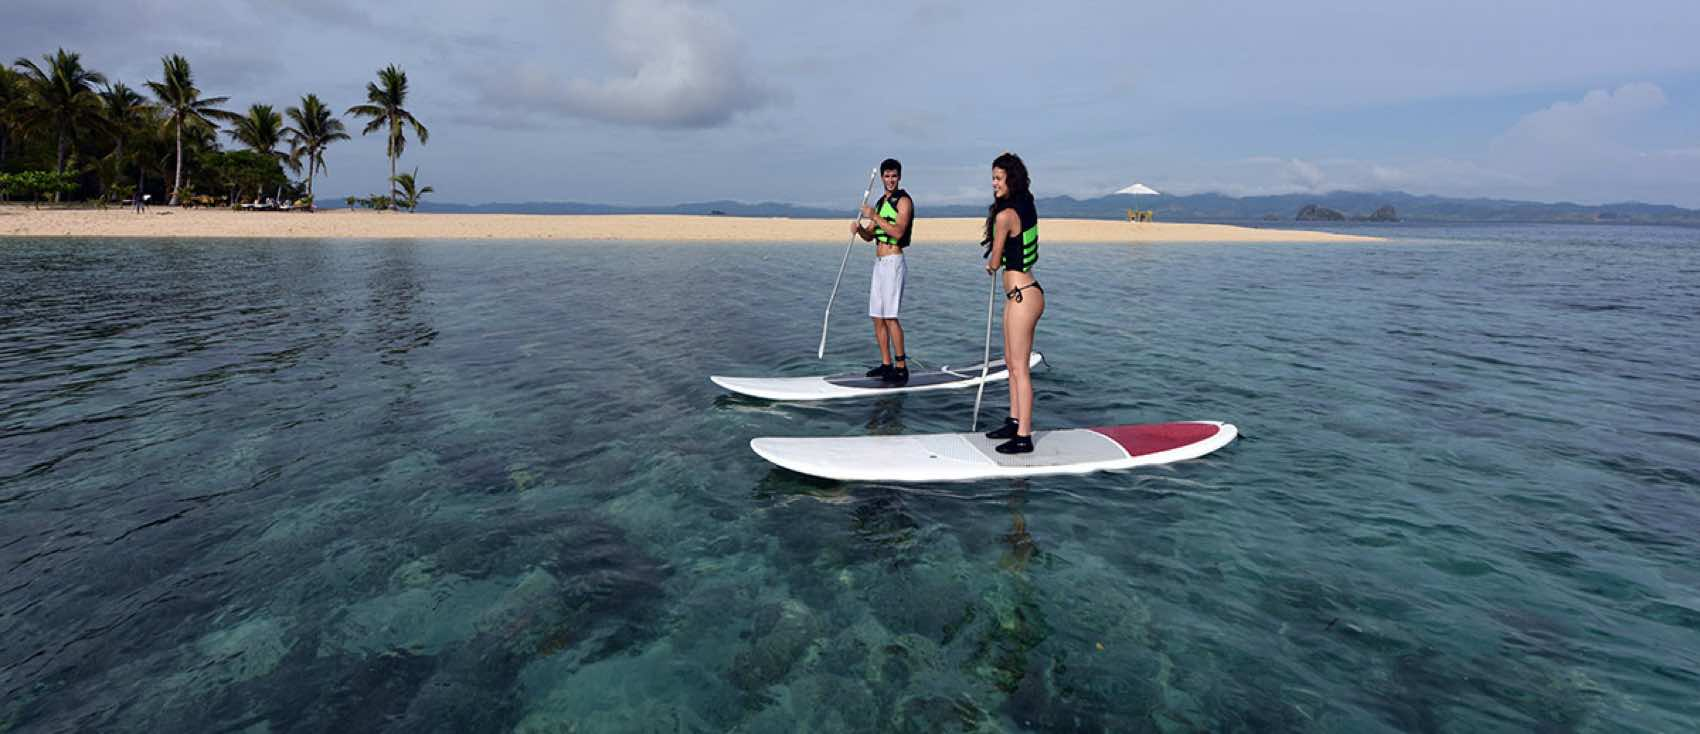 Apulit Island; Stand-Up-Paddle Boarding at Isla Blanca